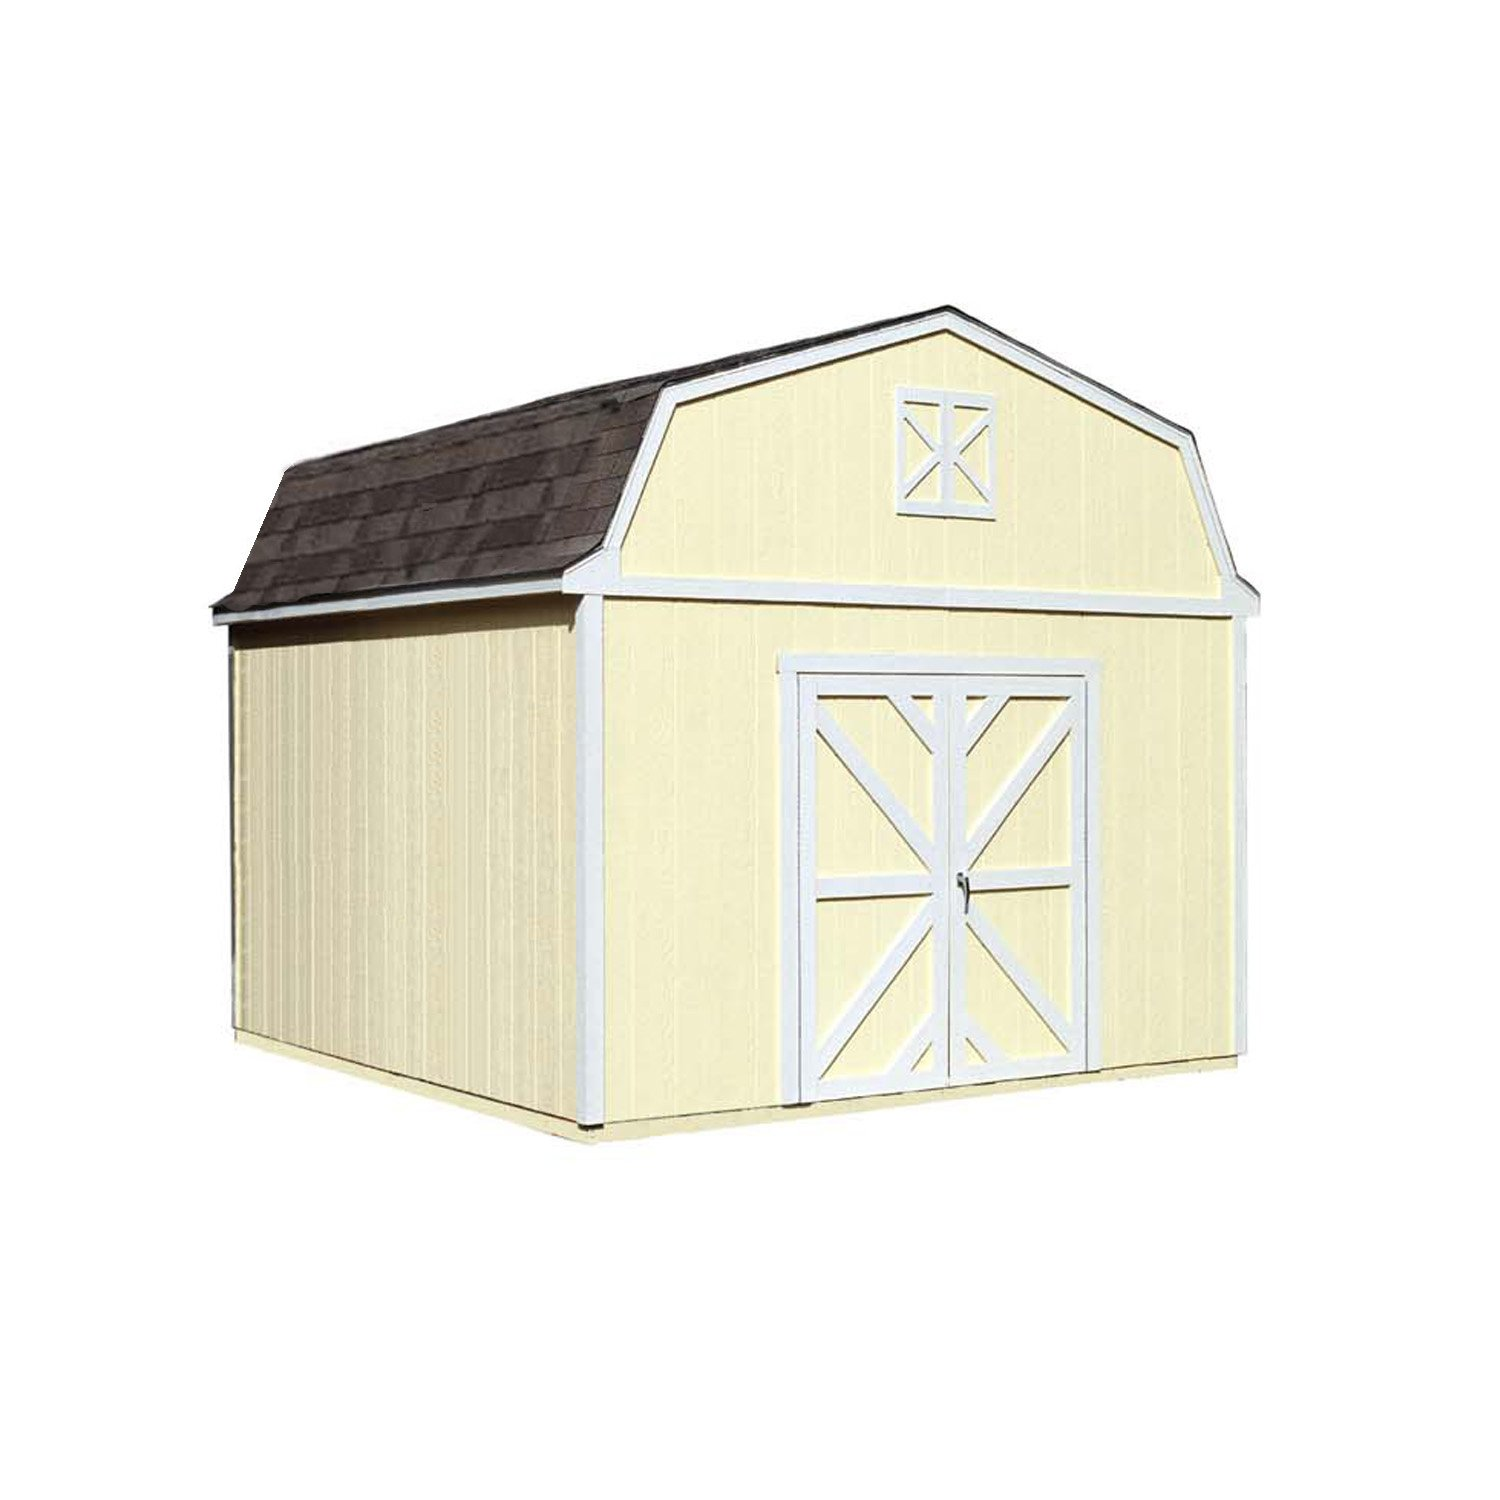 Handy Home Products Sequoia Wooden Storage Shed, 12 by 12-Feet